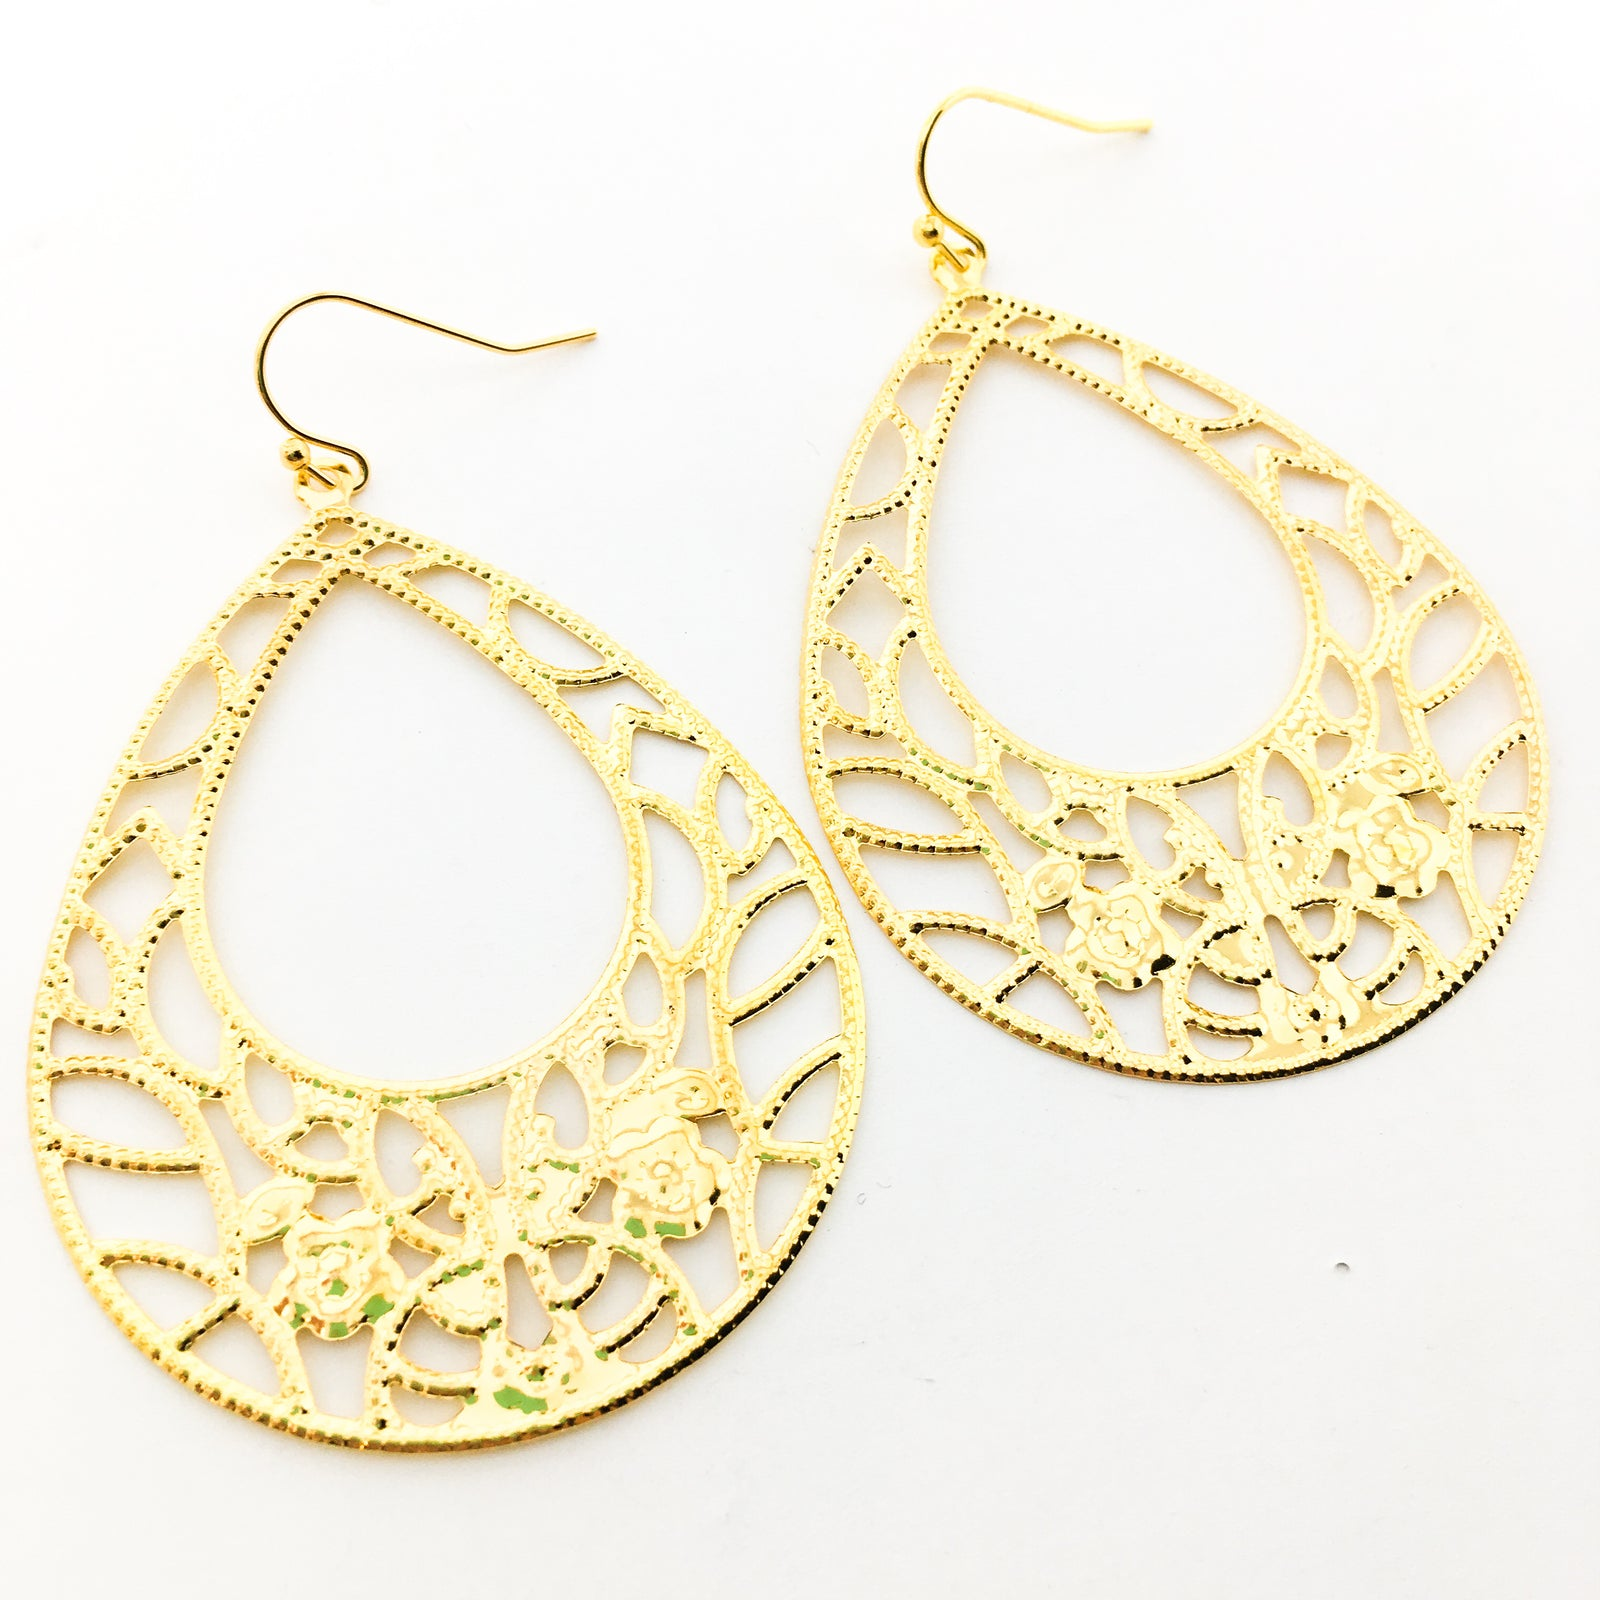 FLORAL OPEN DROP FILIGREE EARRINGS | GOLD